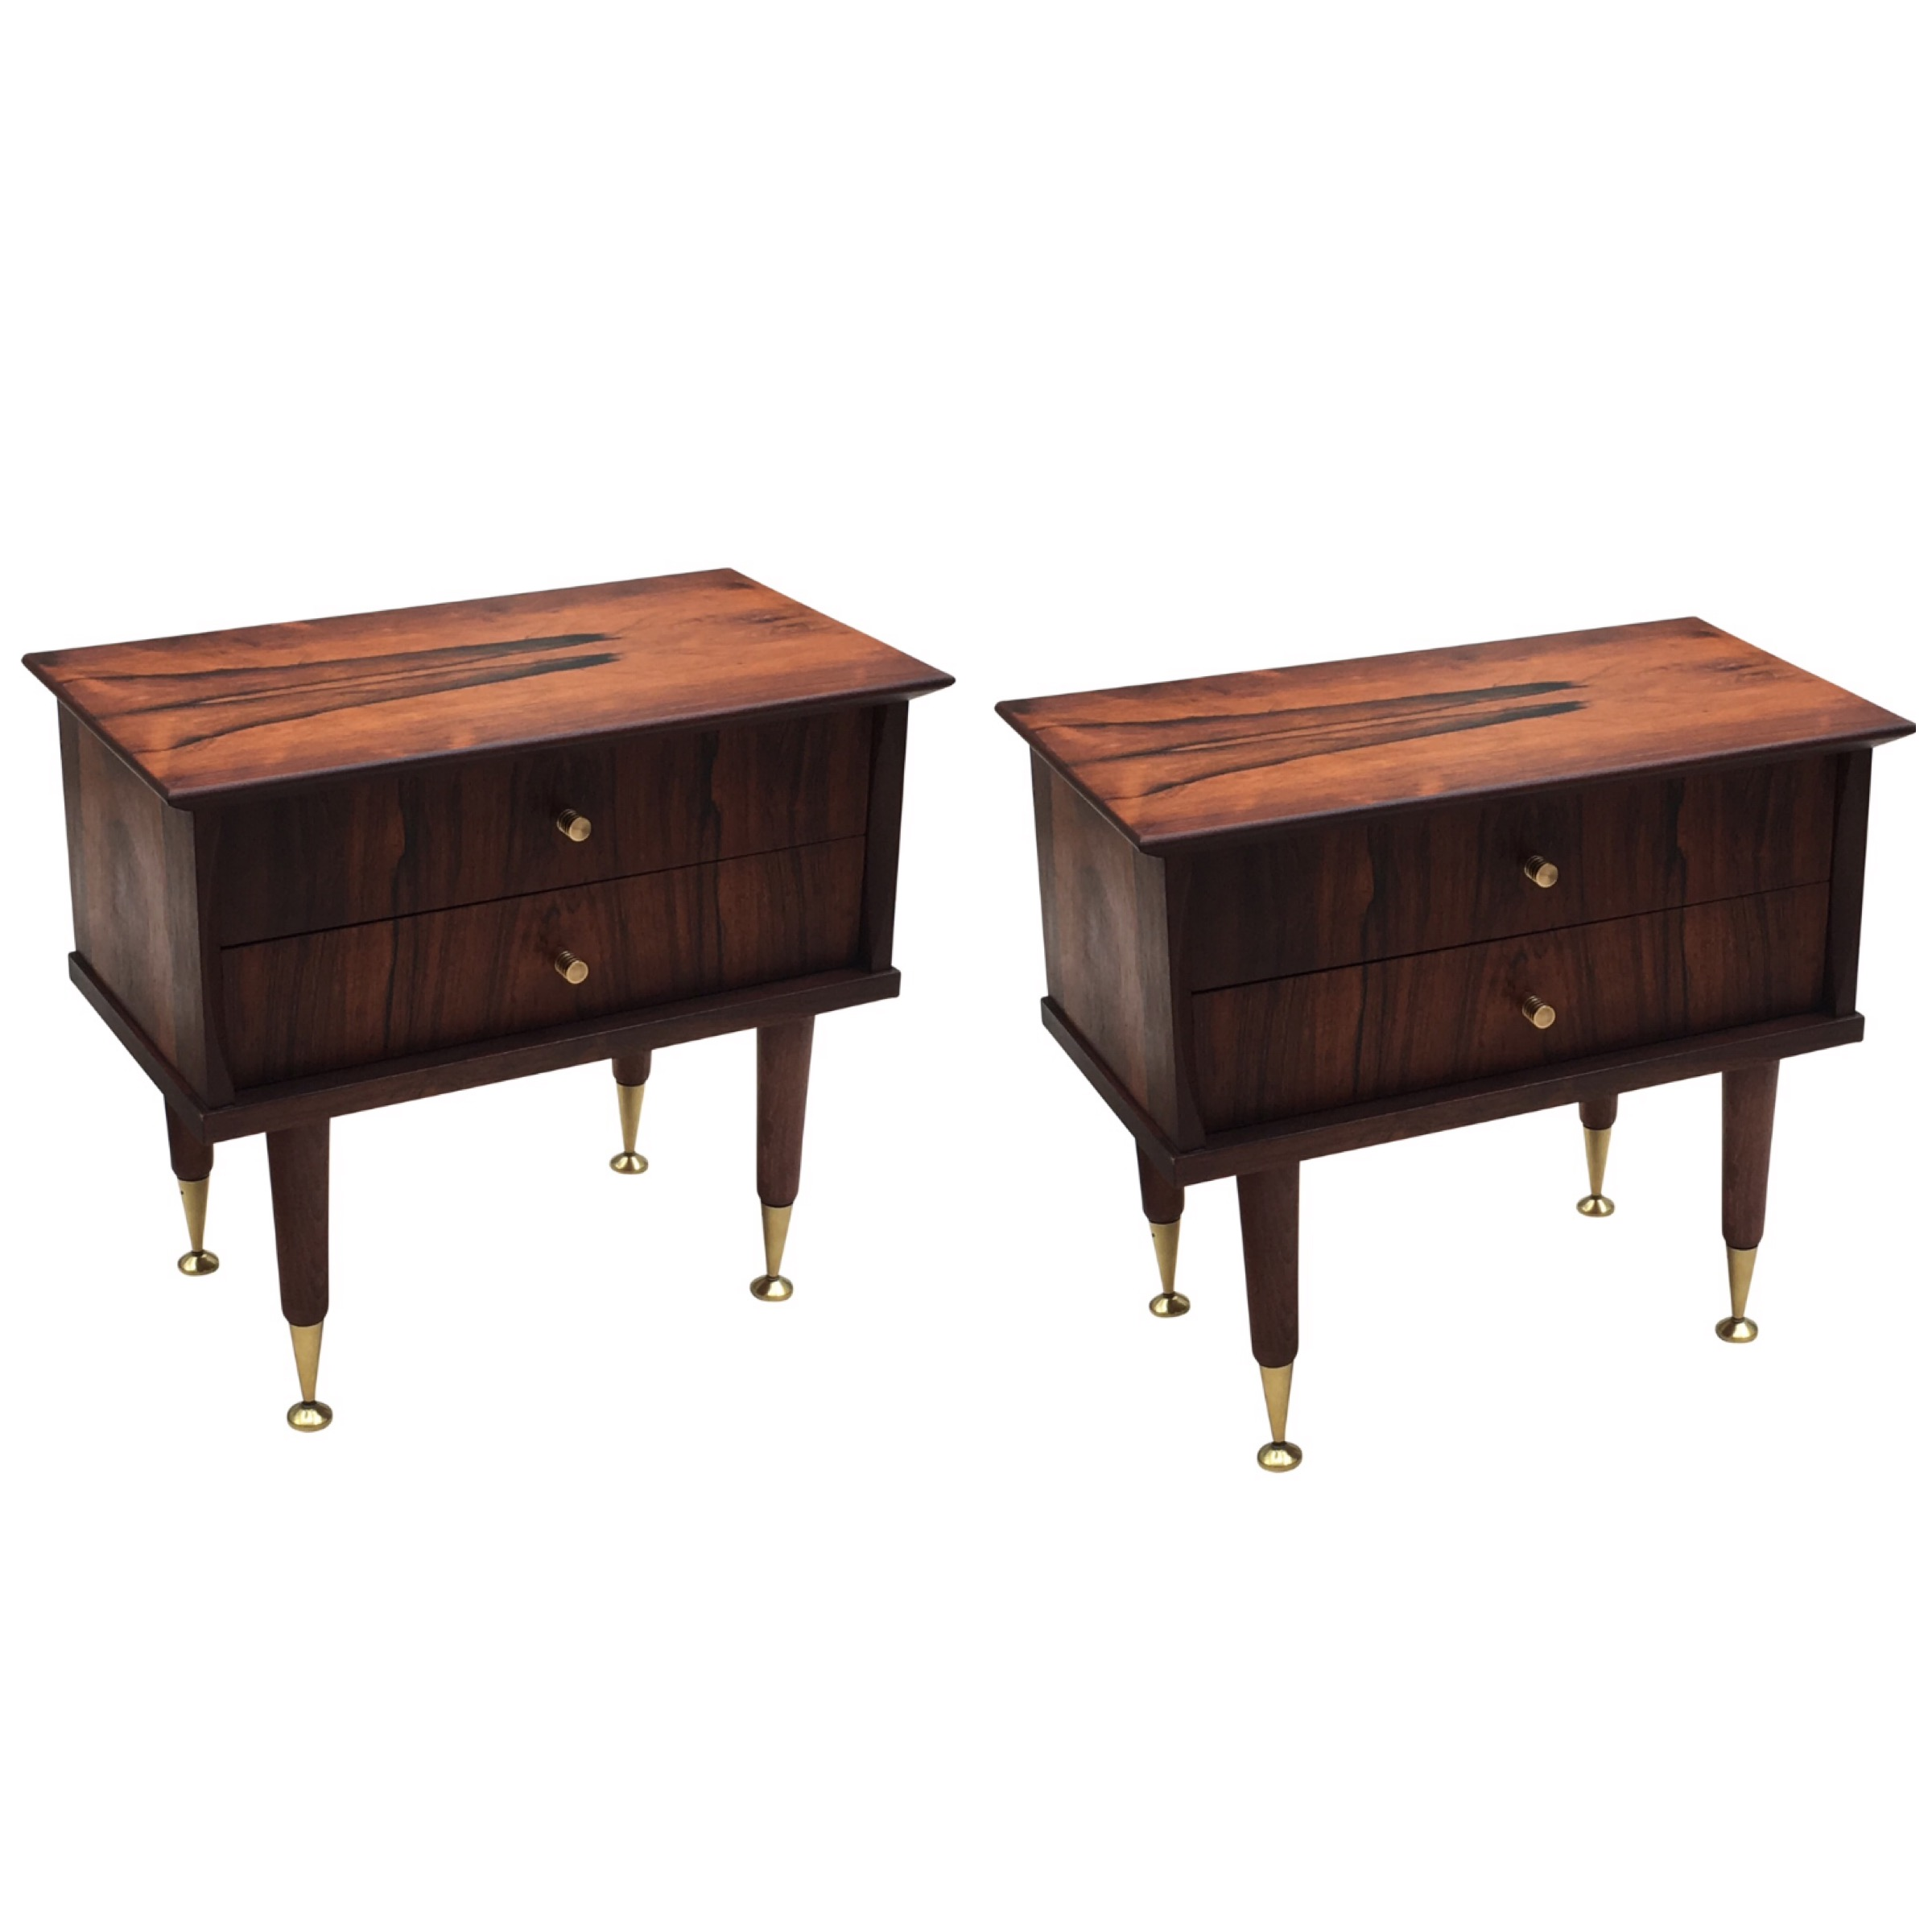 Rosewood bedside tables with 2 drawers each